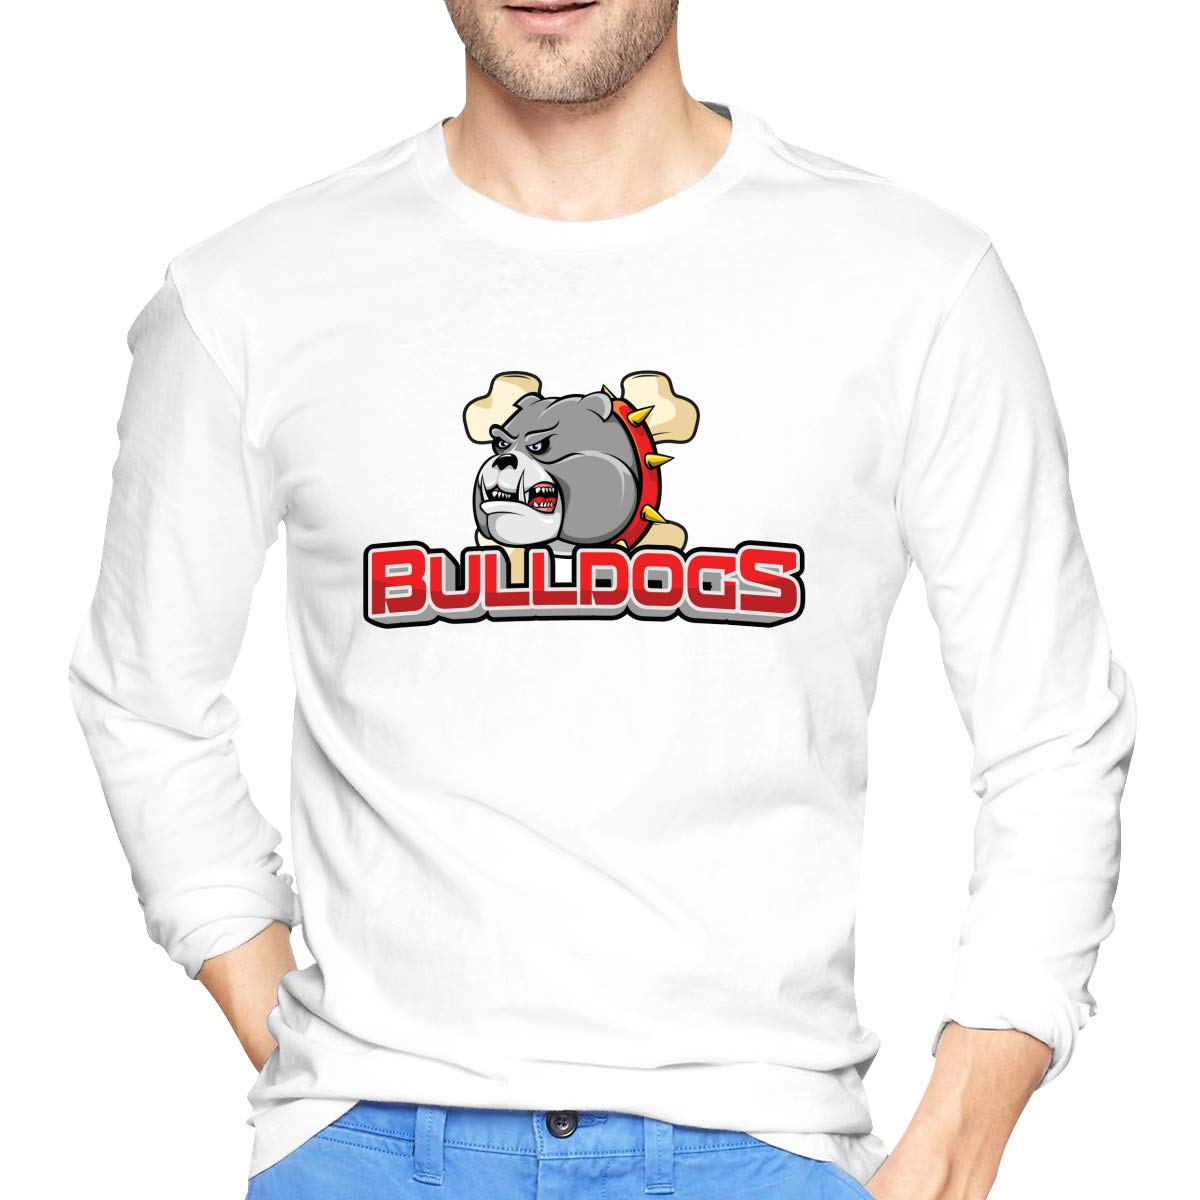 LONGTENG Designed T Shirt Cartoon Proud and Angry Bulldog Fashion T Shirts Long Sleeve Pure Cotton for Boys Black